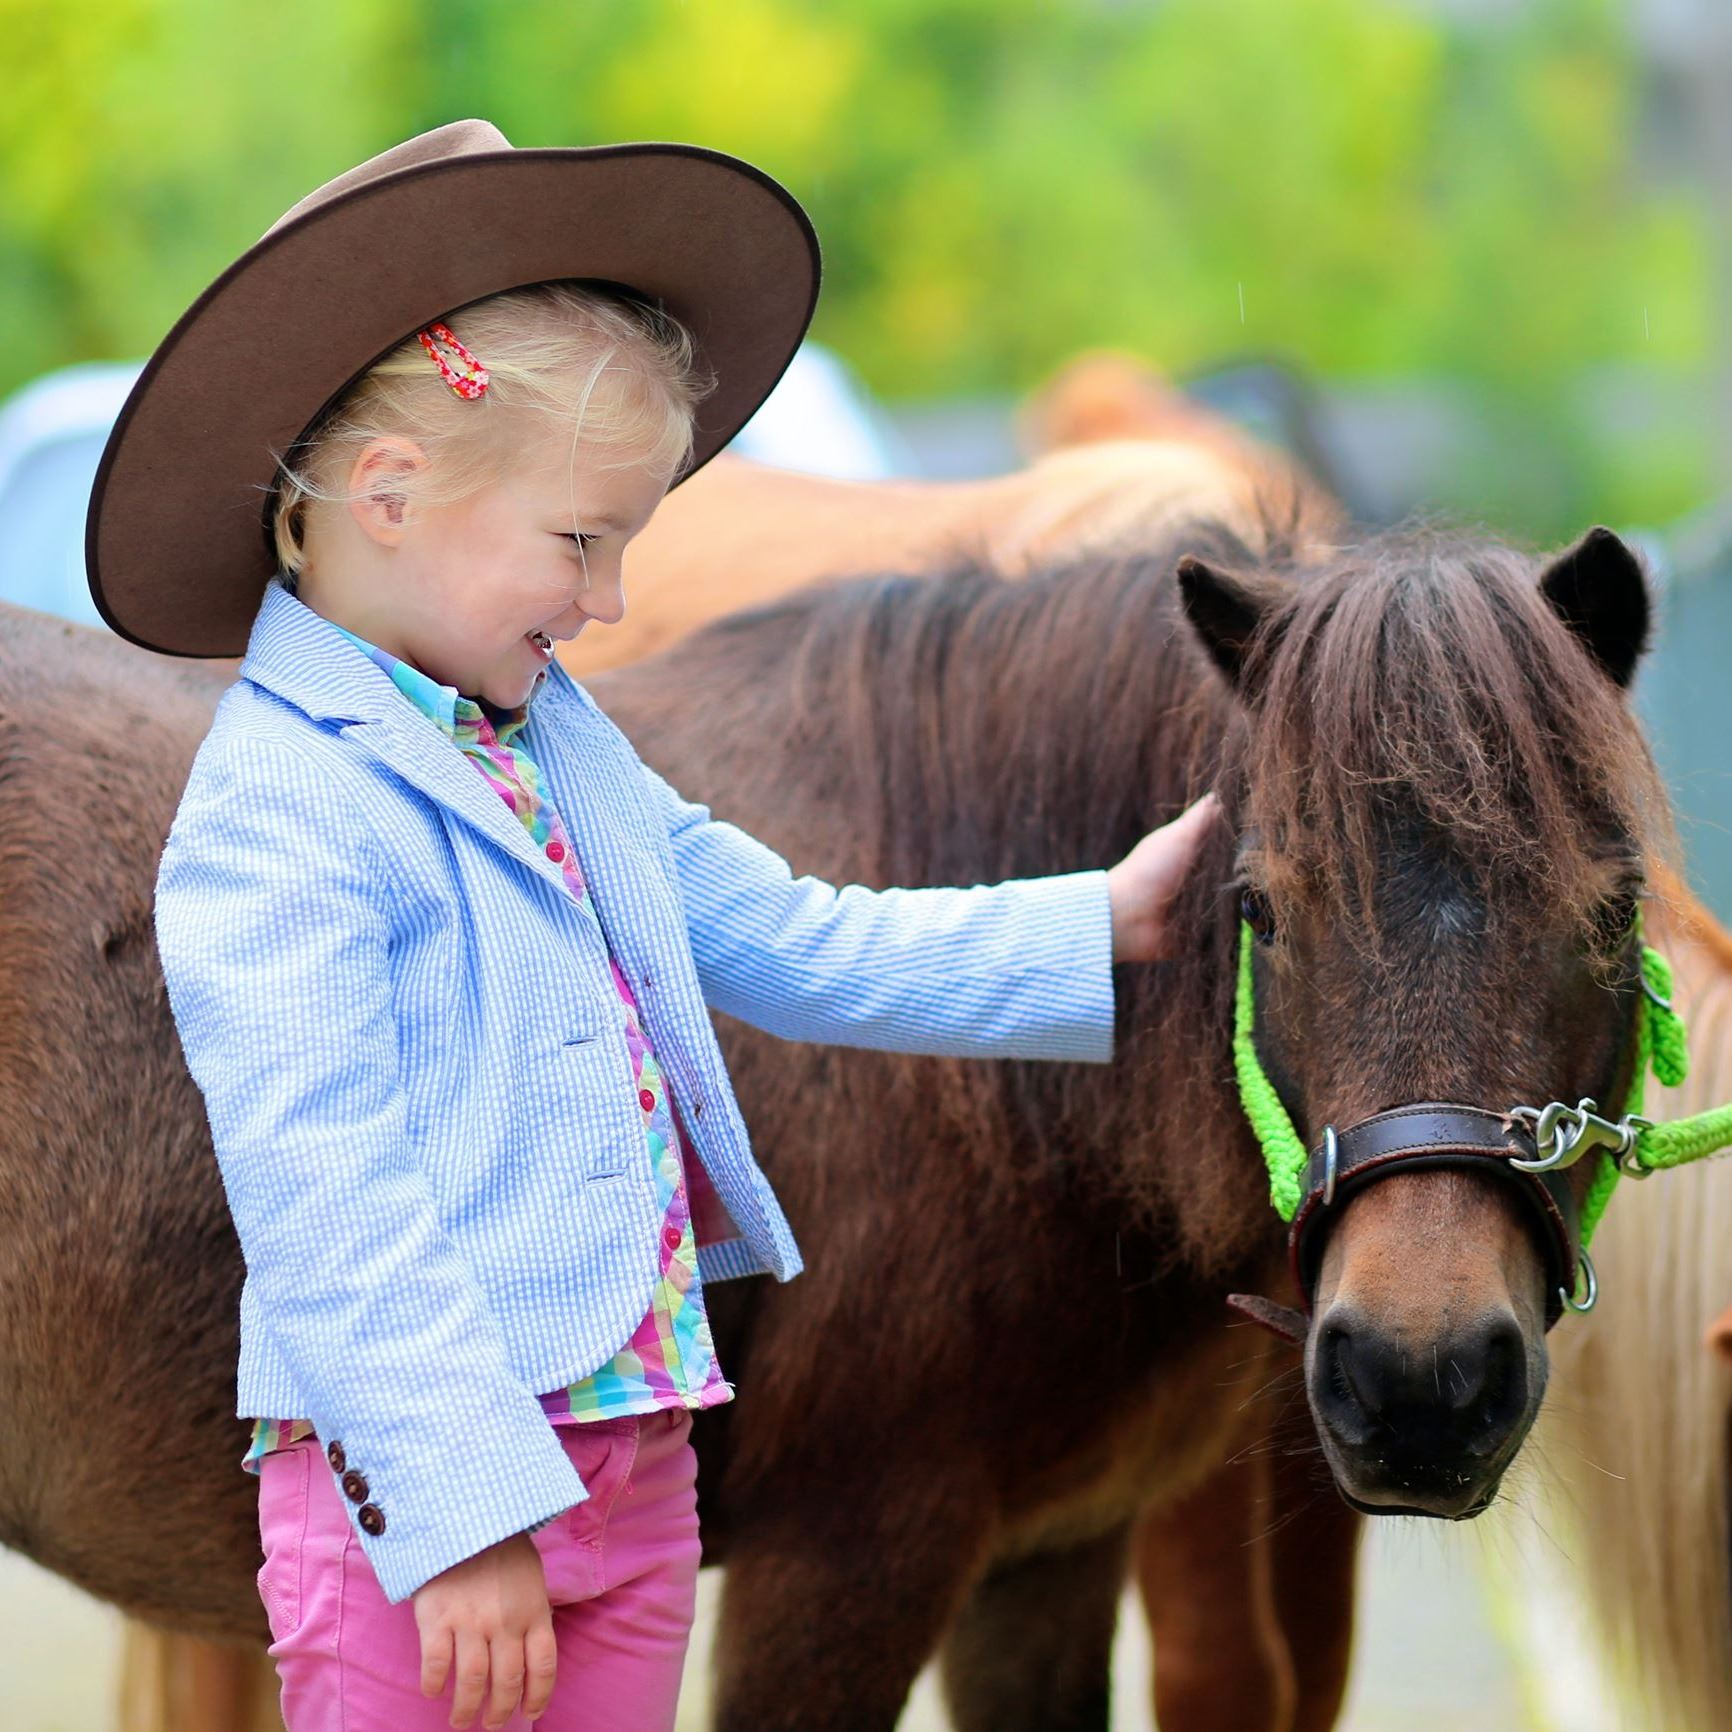 Little girl petting pony.